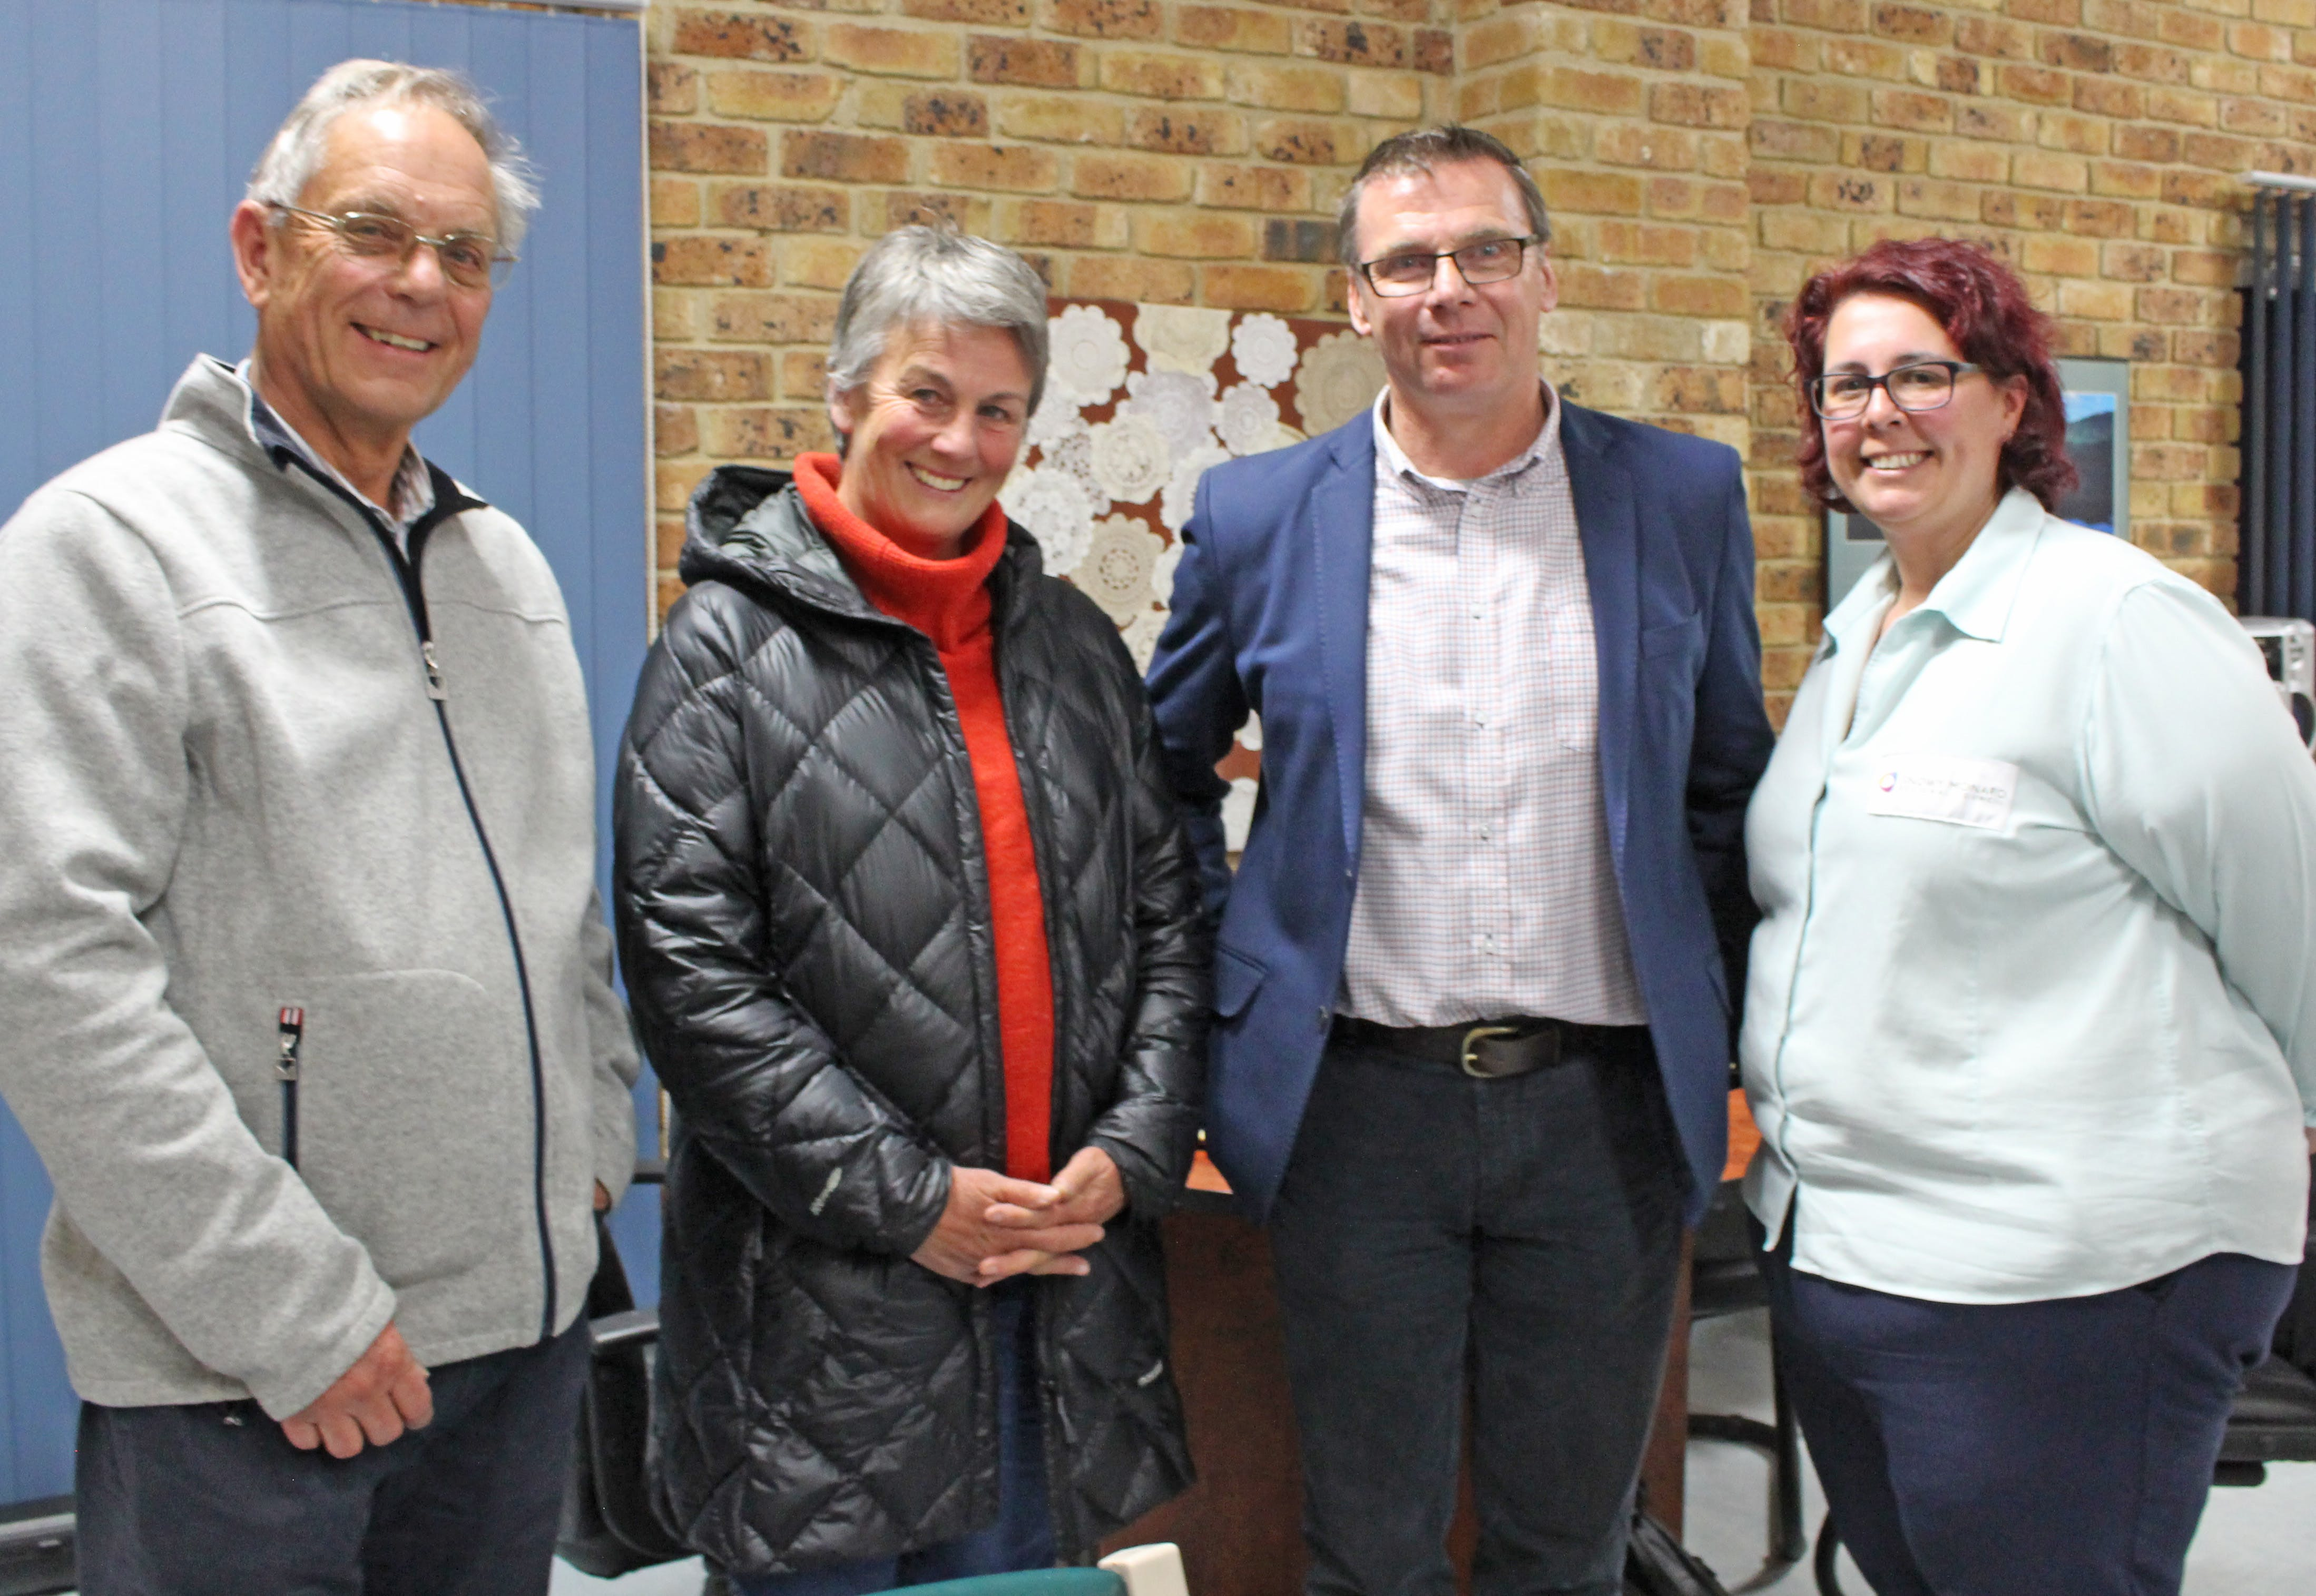 Mayor Peter Beer, Councillor Sue Haslingden, Acting Director Operations and Infrastructure Gary Shakespeare, and Group Manager Asset Management Linda Nicholson